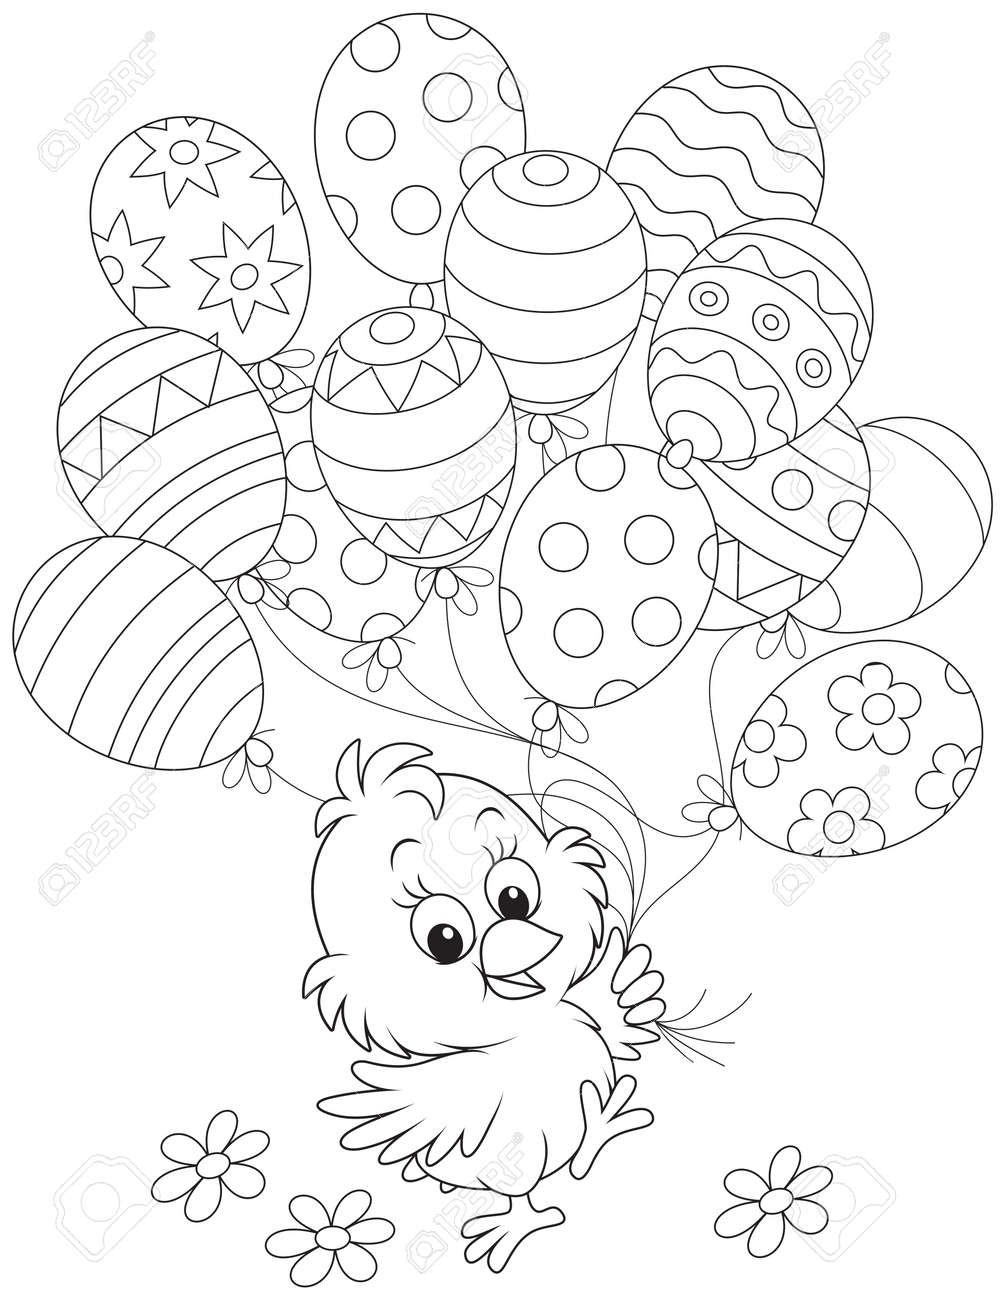 Easter Chick with balloons - 34757437